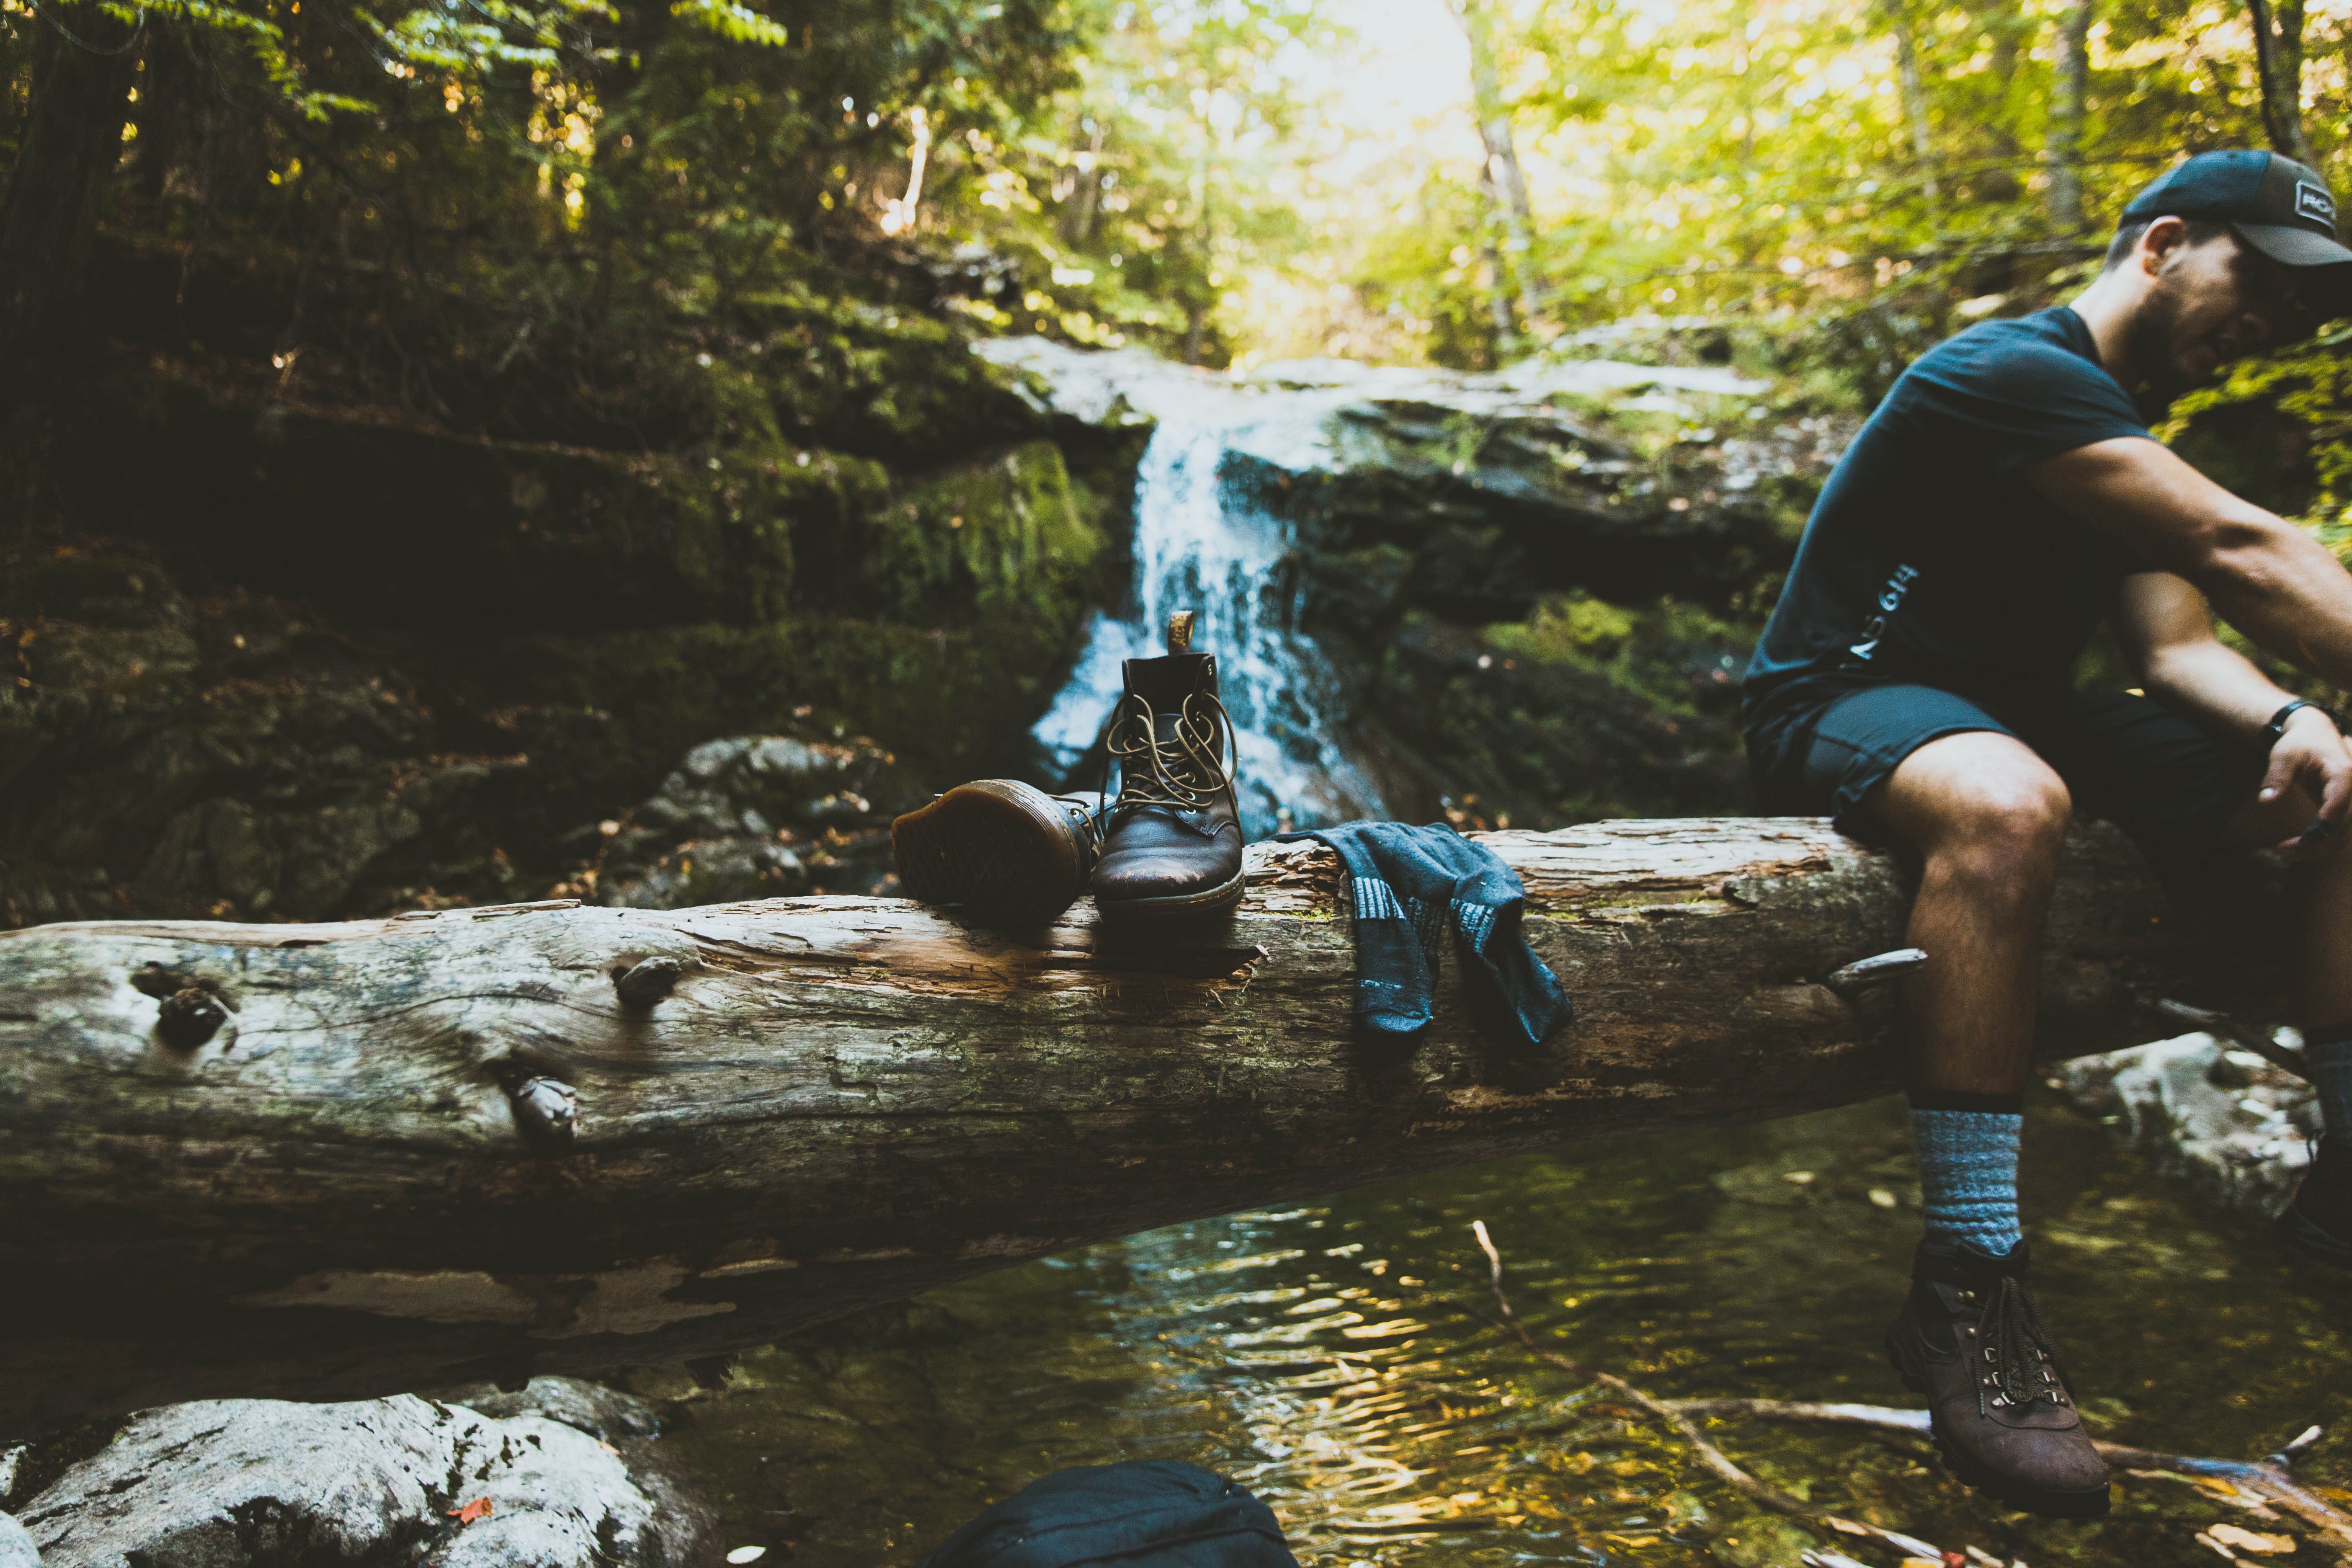 This is a picture of a man on hike, resting by a small waterfall. He is wearing boots with socks and sitting on a log.